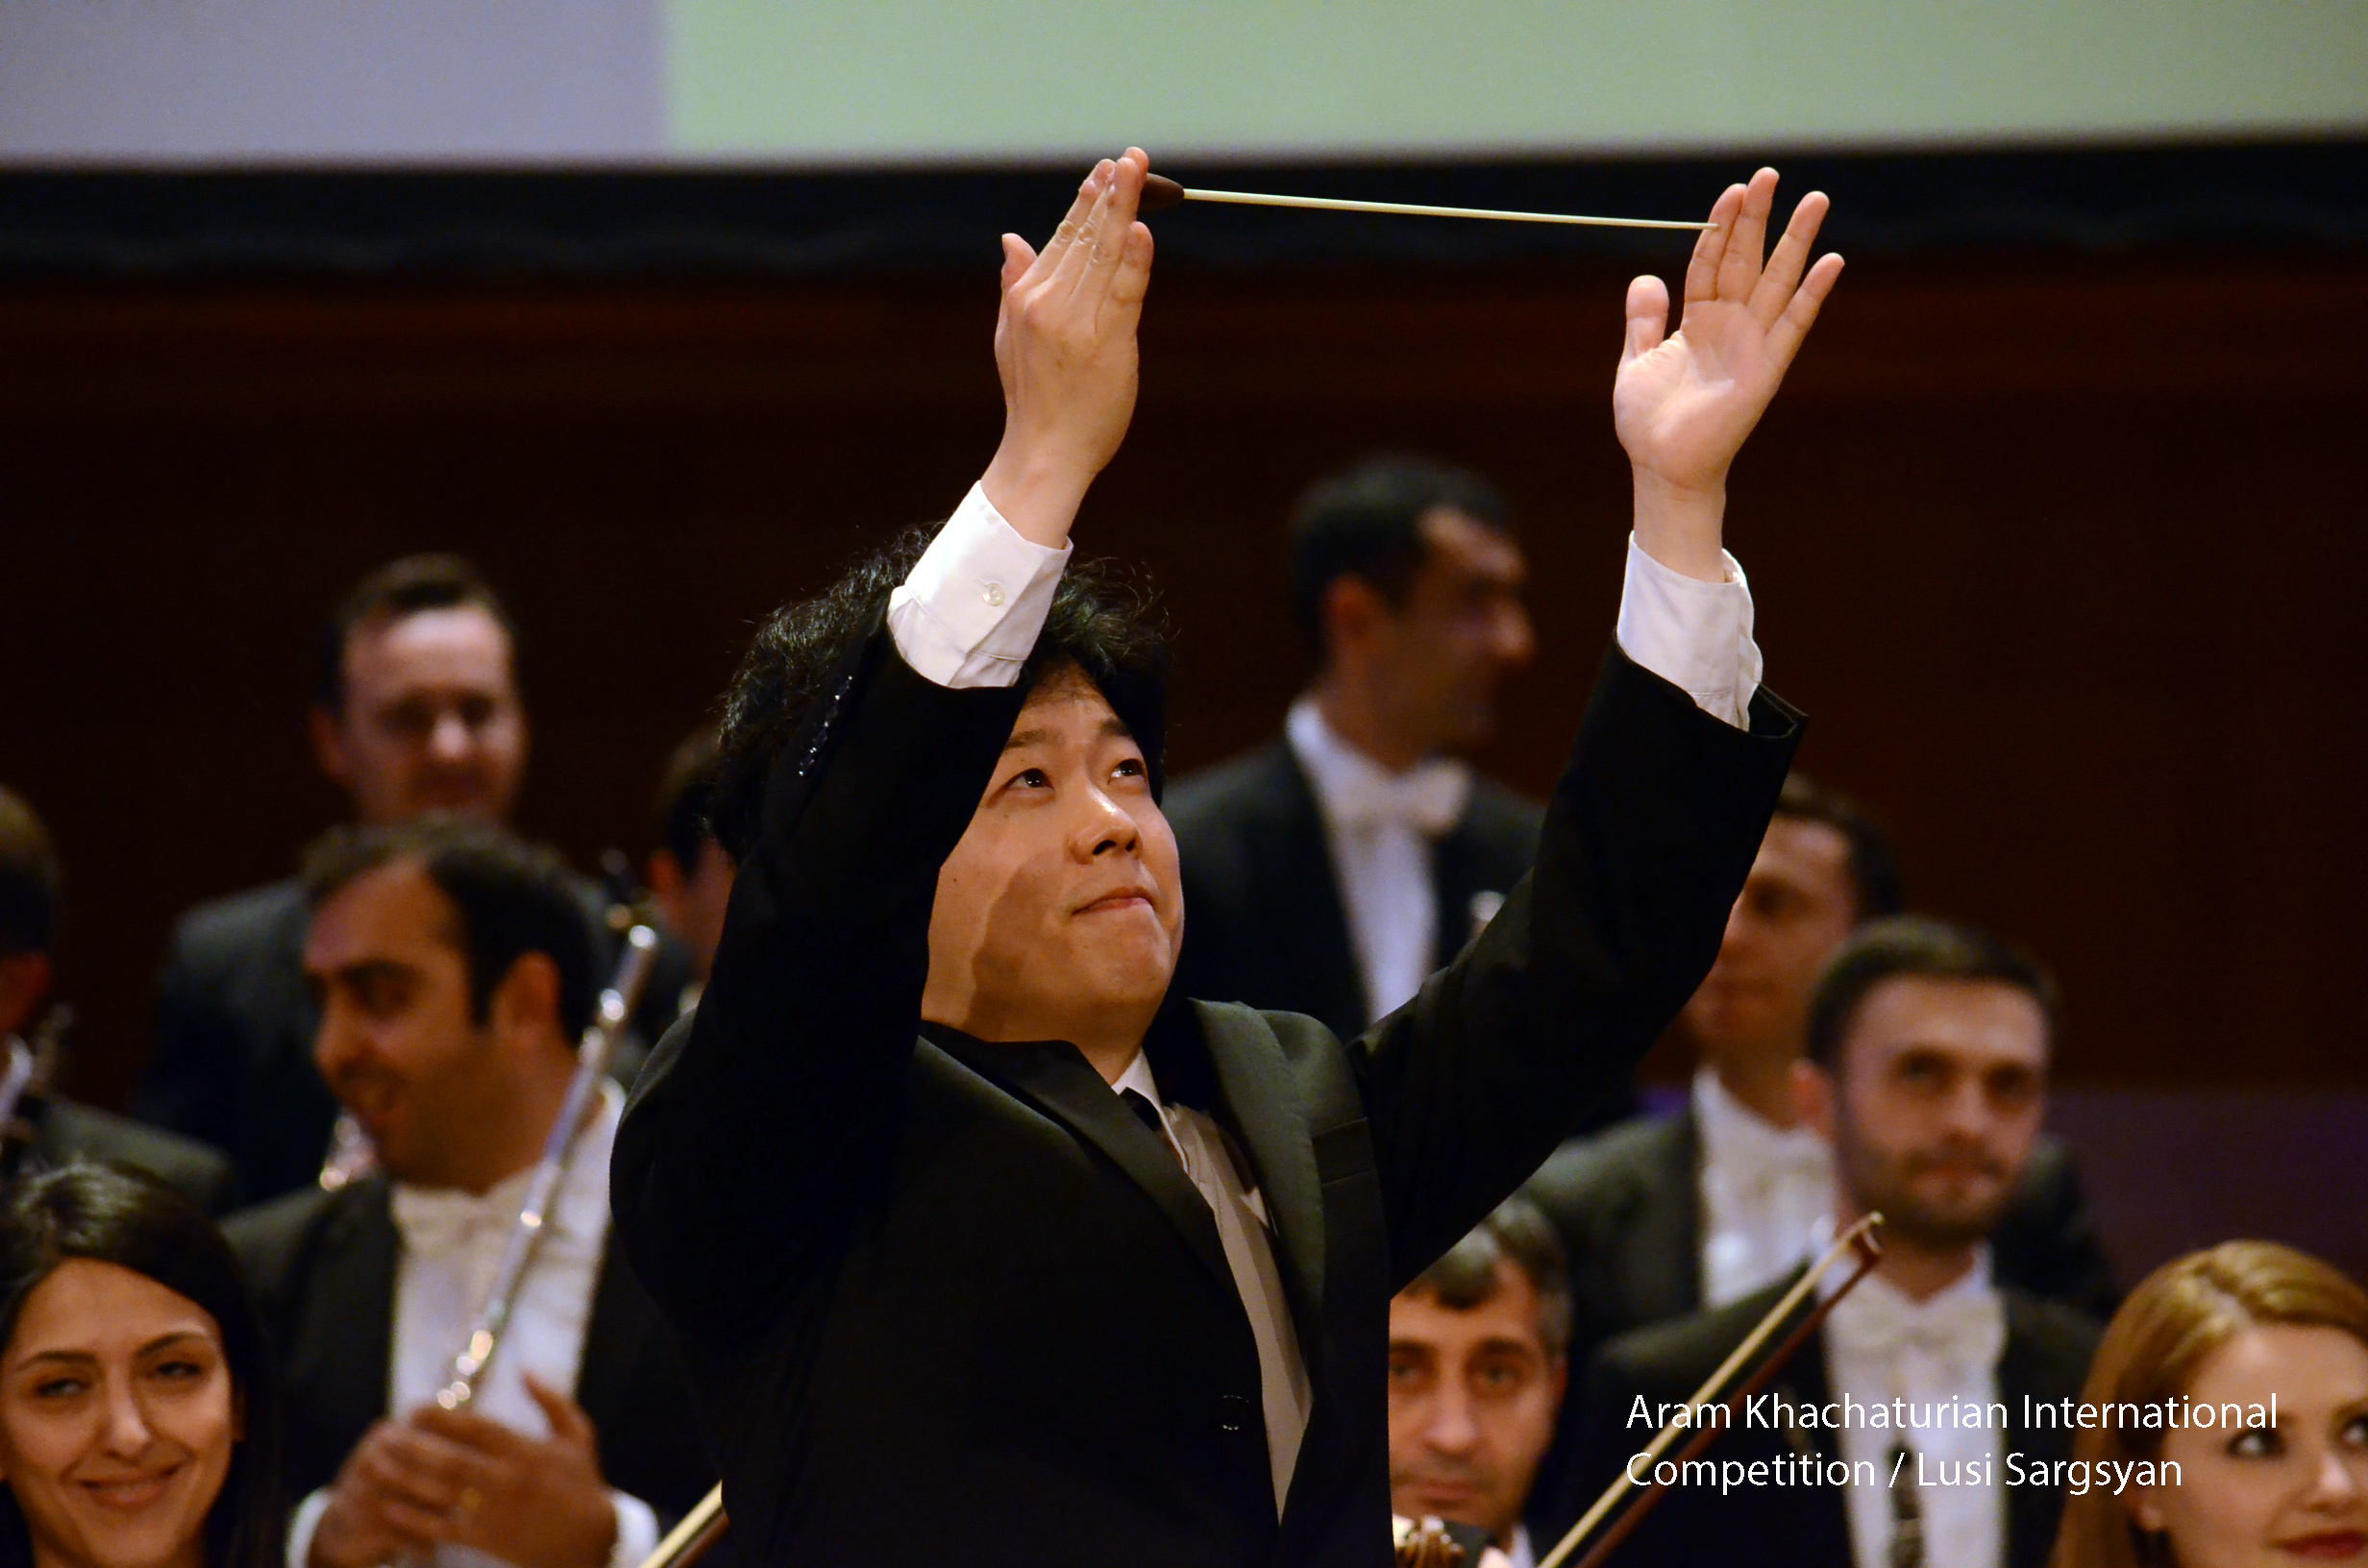 Khachaturian Competition 2016